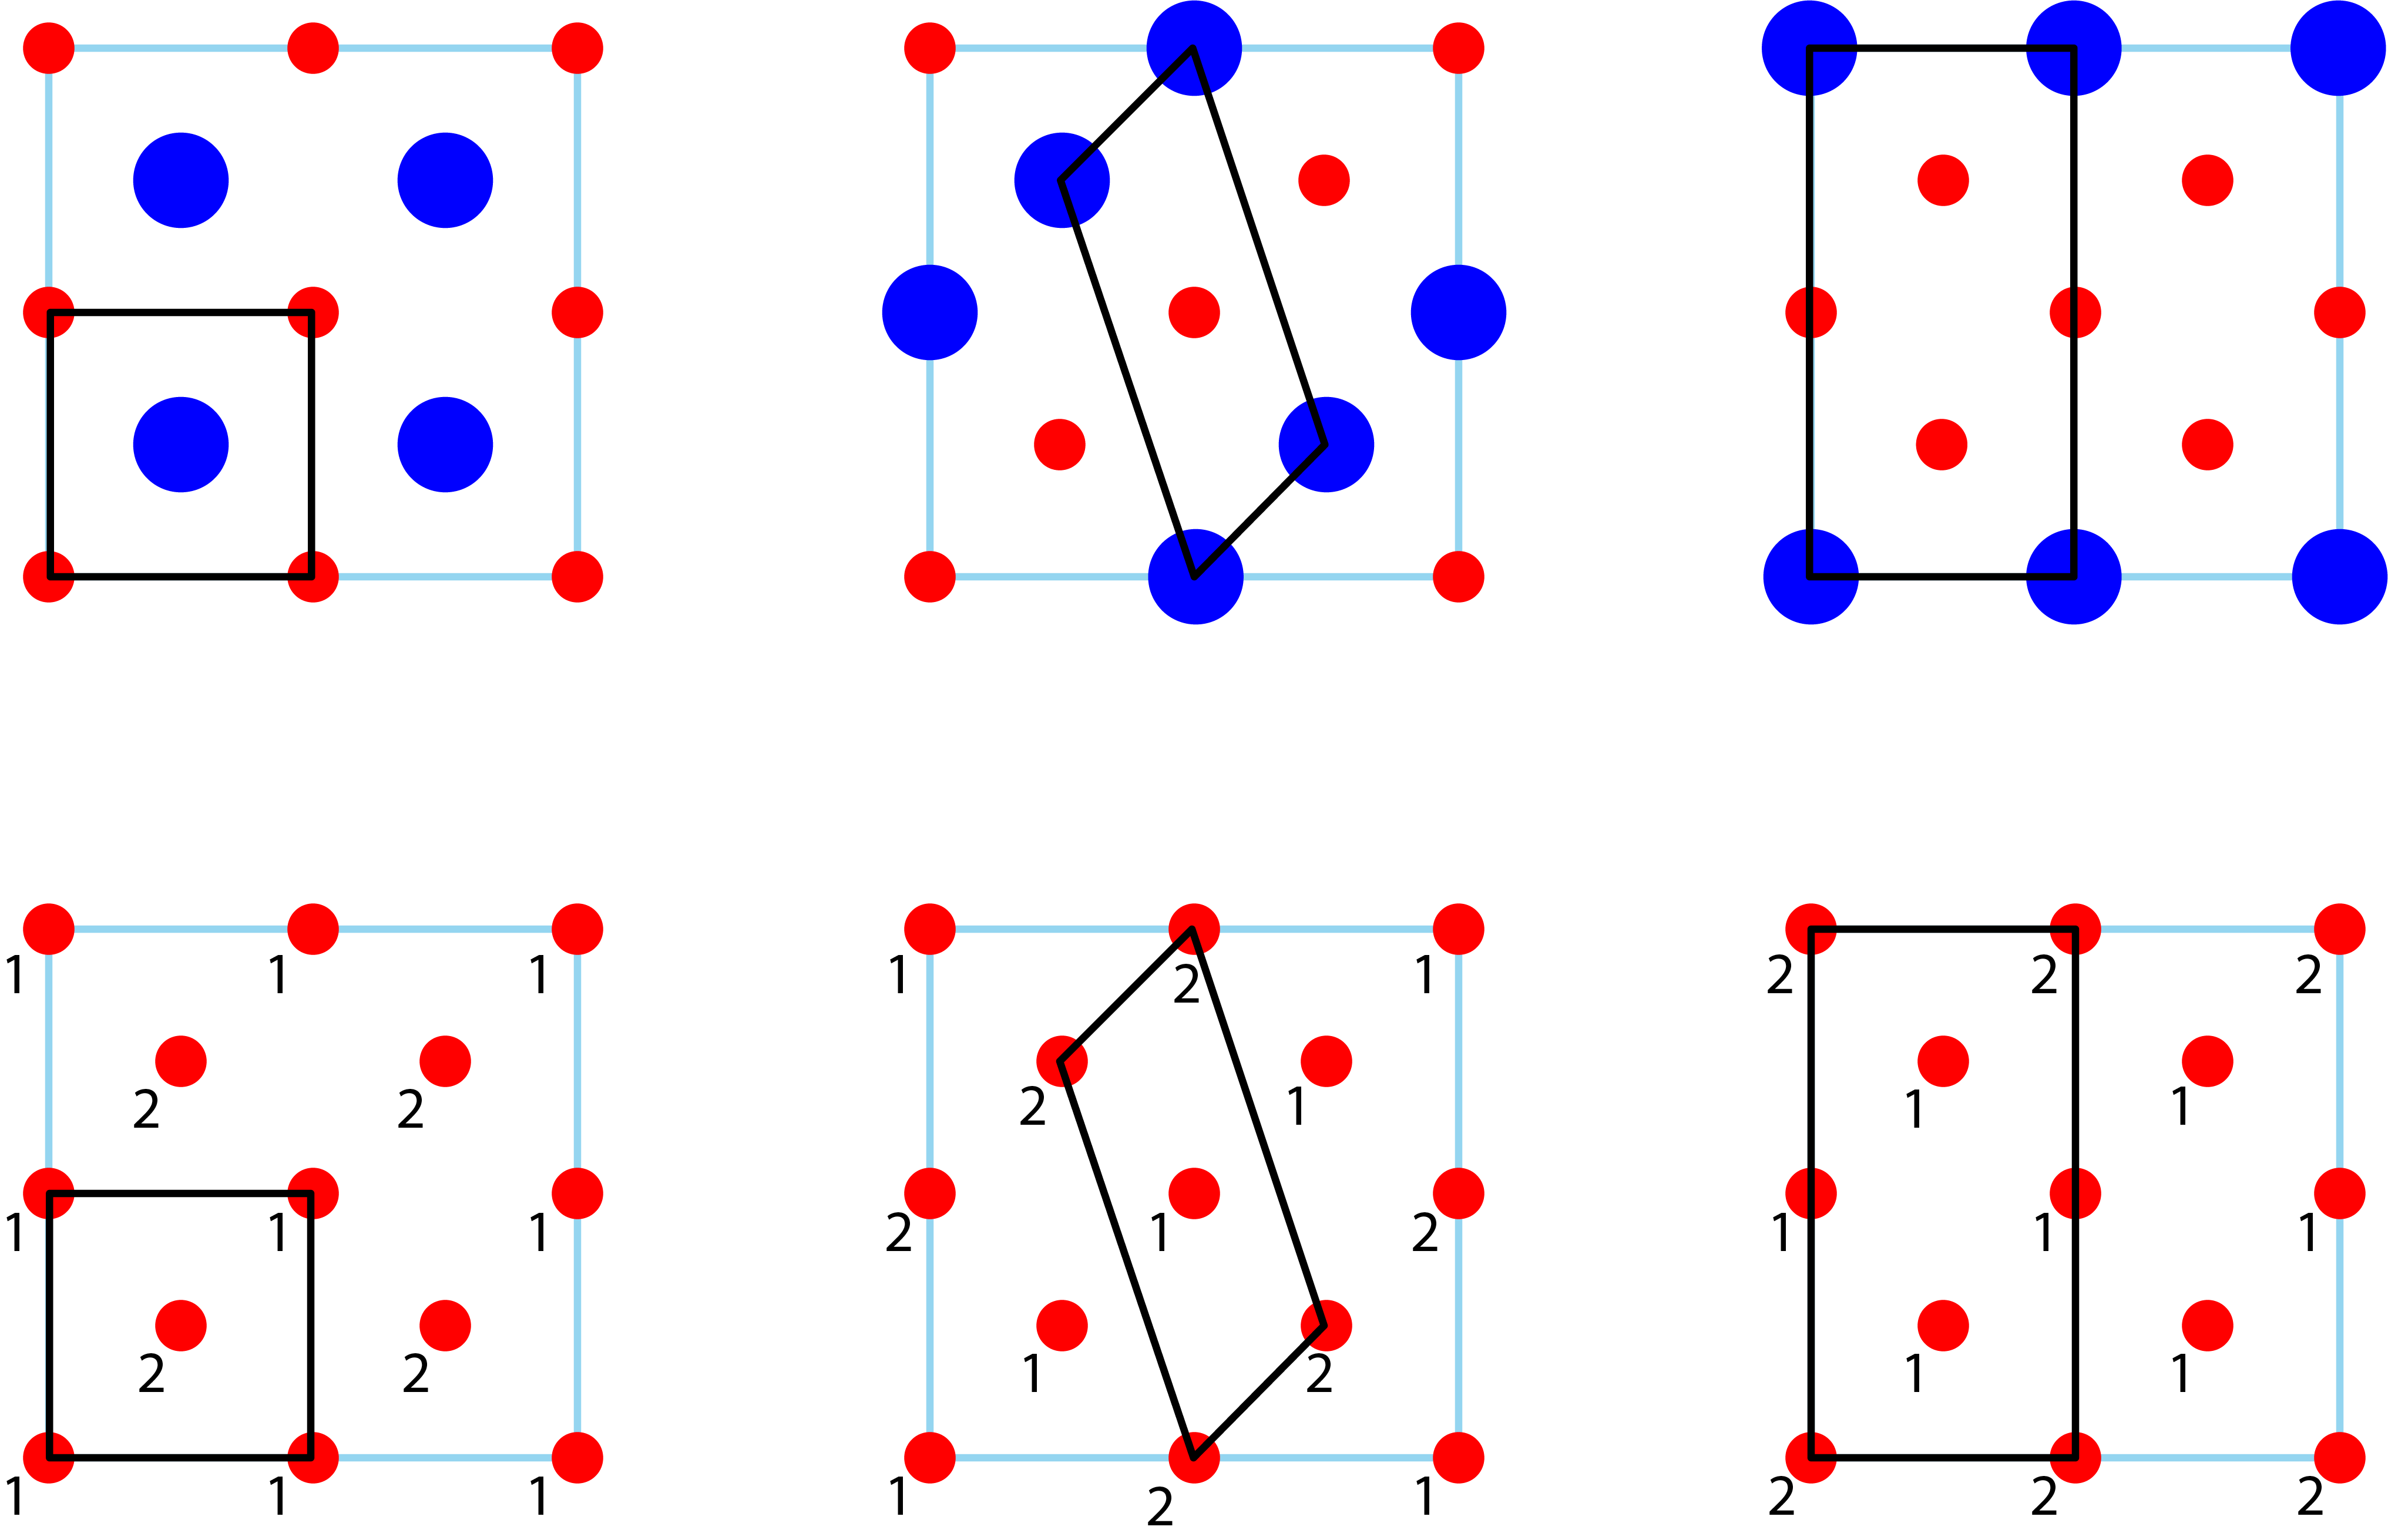 In order to isolate the affect of the Brillouin zone shape and size on total energy error when comparing crystal structures of different shapes and sizes (top row), the energy of supercells (bottom row) crystallographically equivalent to single element, primitive cells were compared. The total energy per atom should be the same for all equivalent cells.